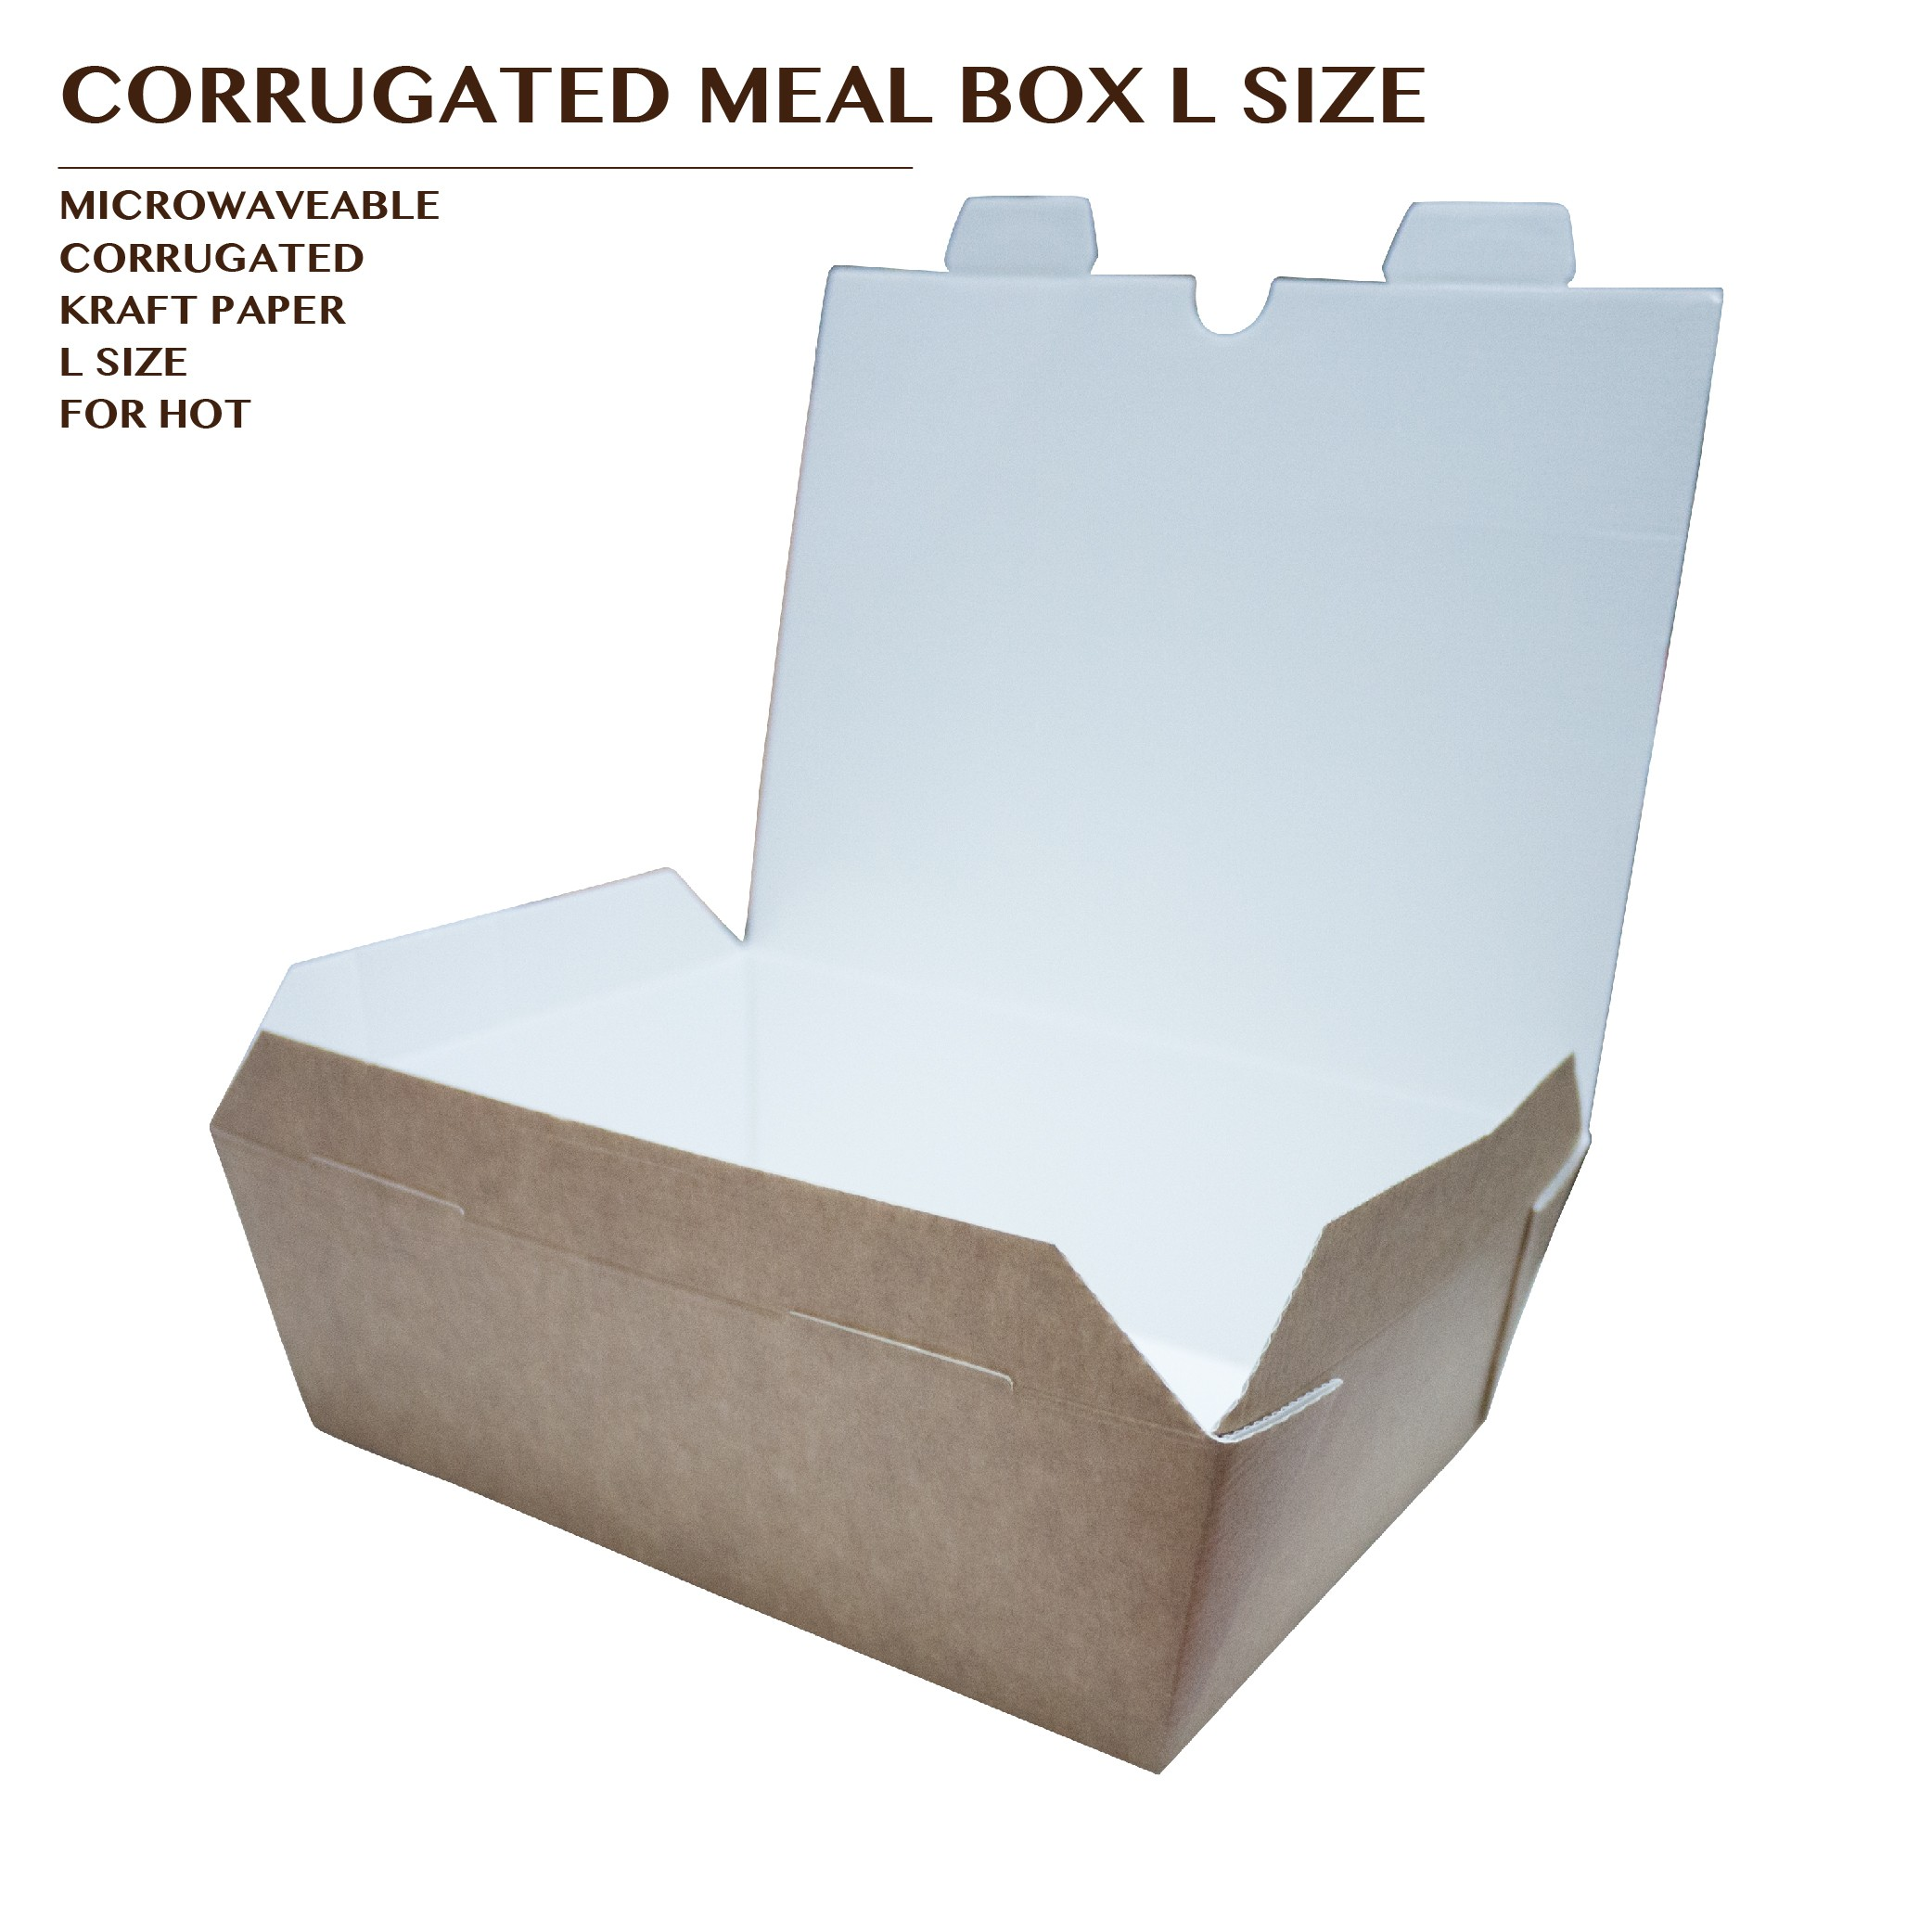 PRE-ORDER CORRUGATED MEAL BOX KRAFT L SIZE 1000PCS/CTN